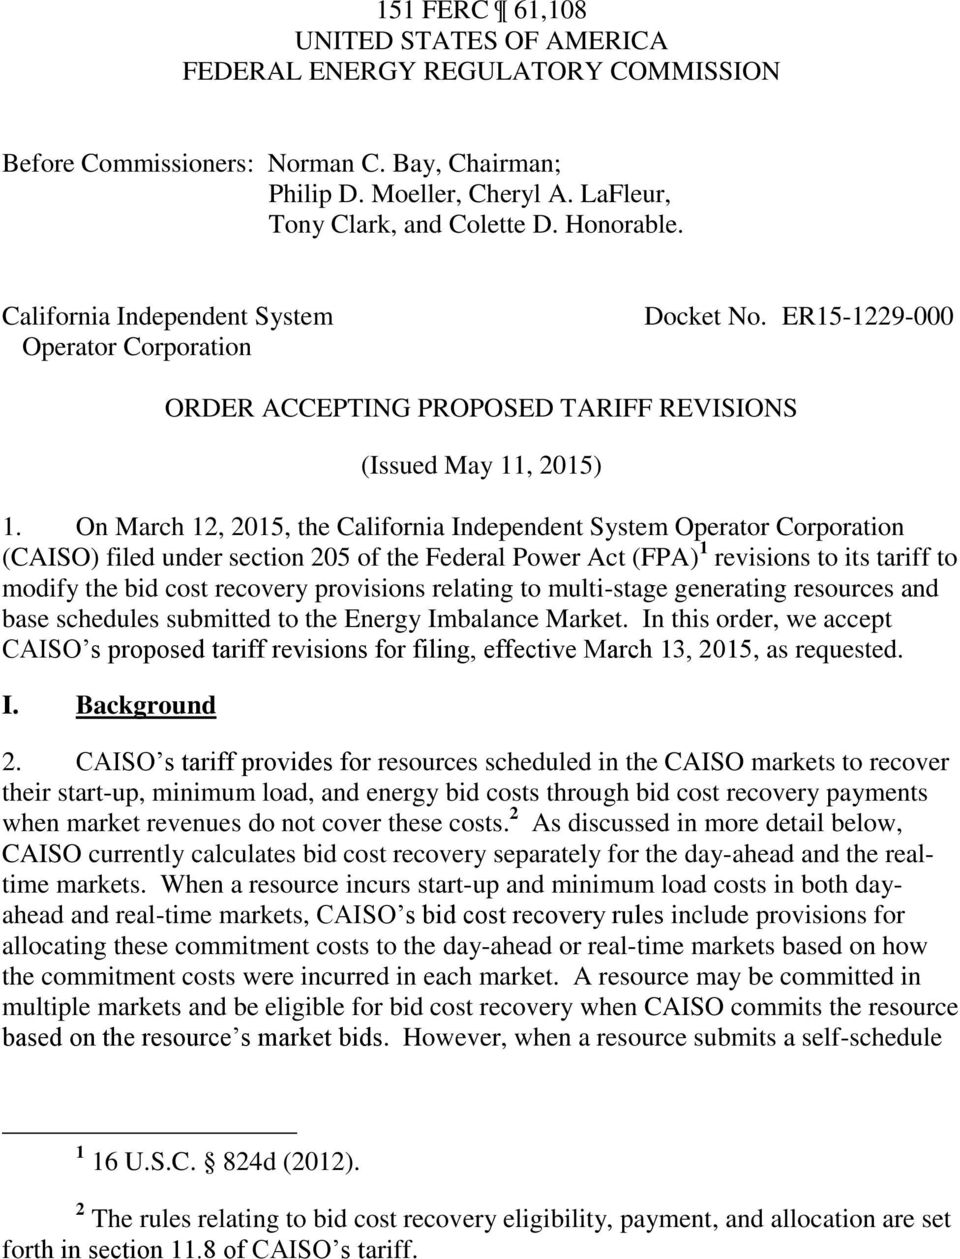 On March 12, 2015, the California Independent System Operator Corporation (CAISO) filed under section 205 of the Federal Power Act (FPA) 1 revisions to its tariff to modify the bid cost recovery